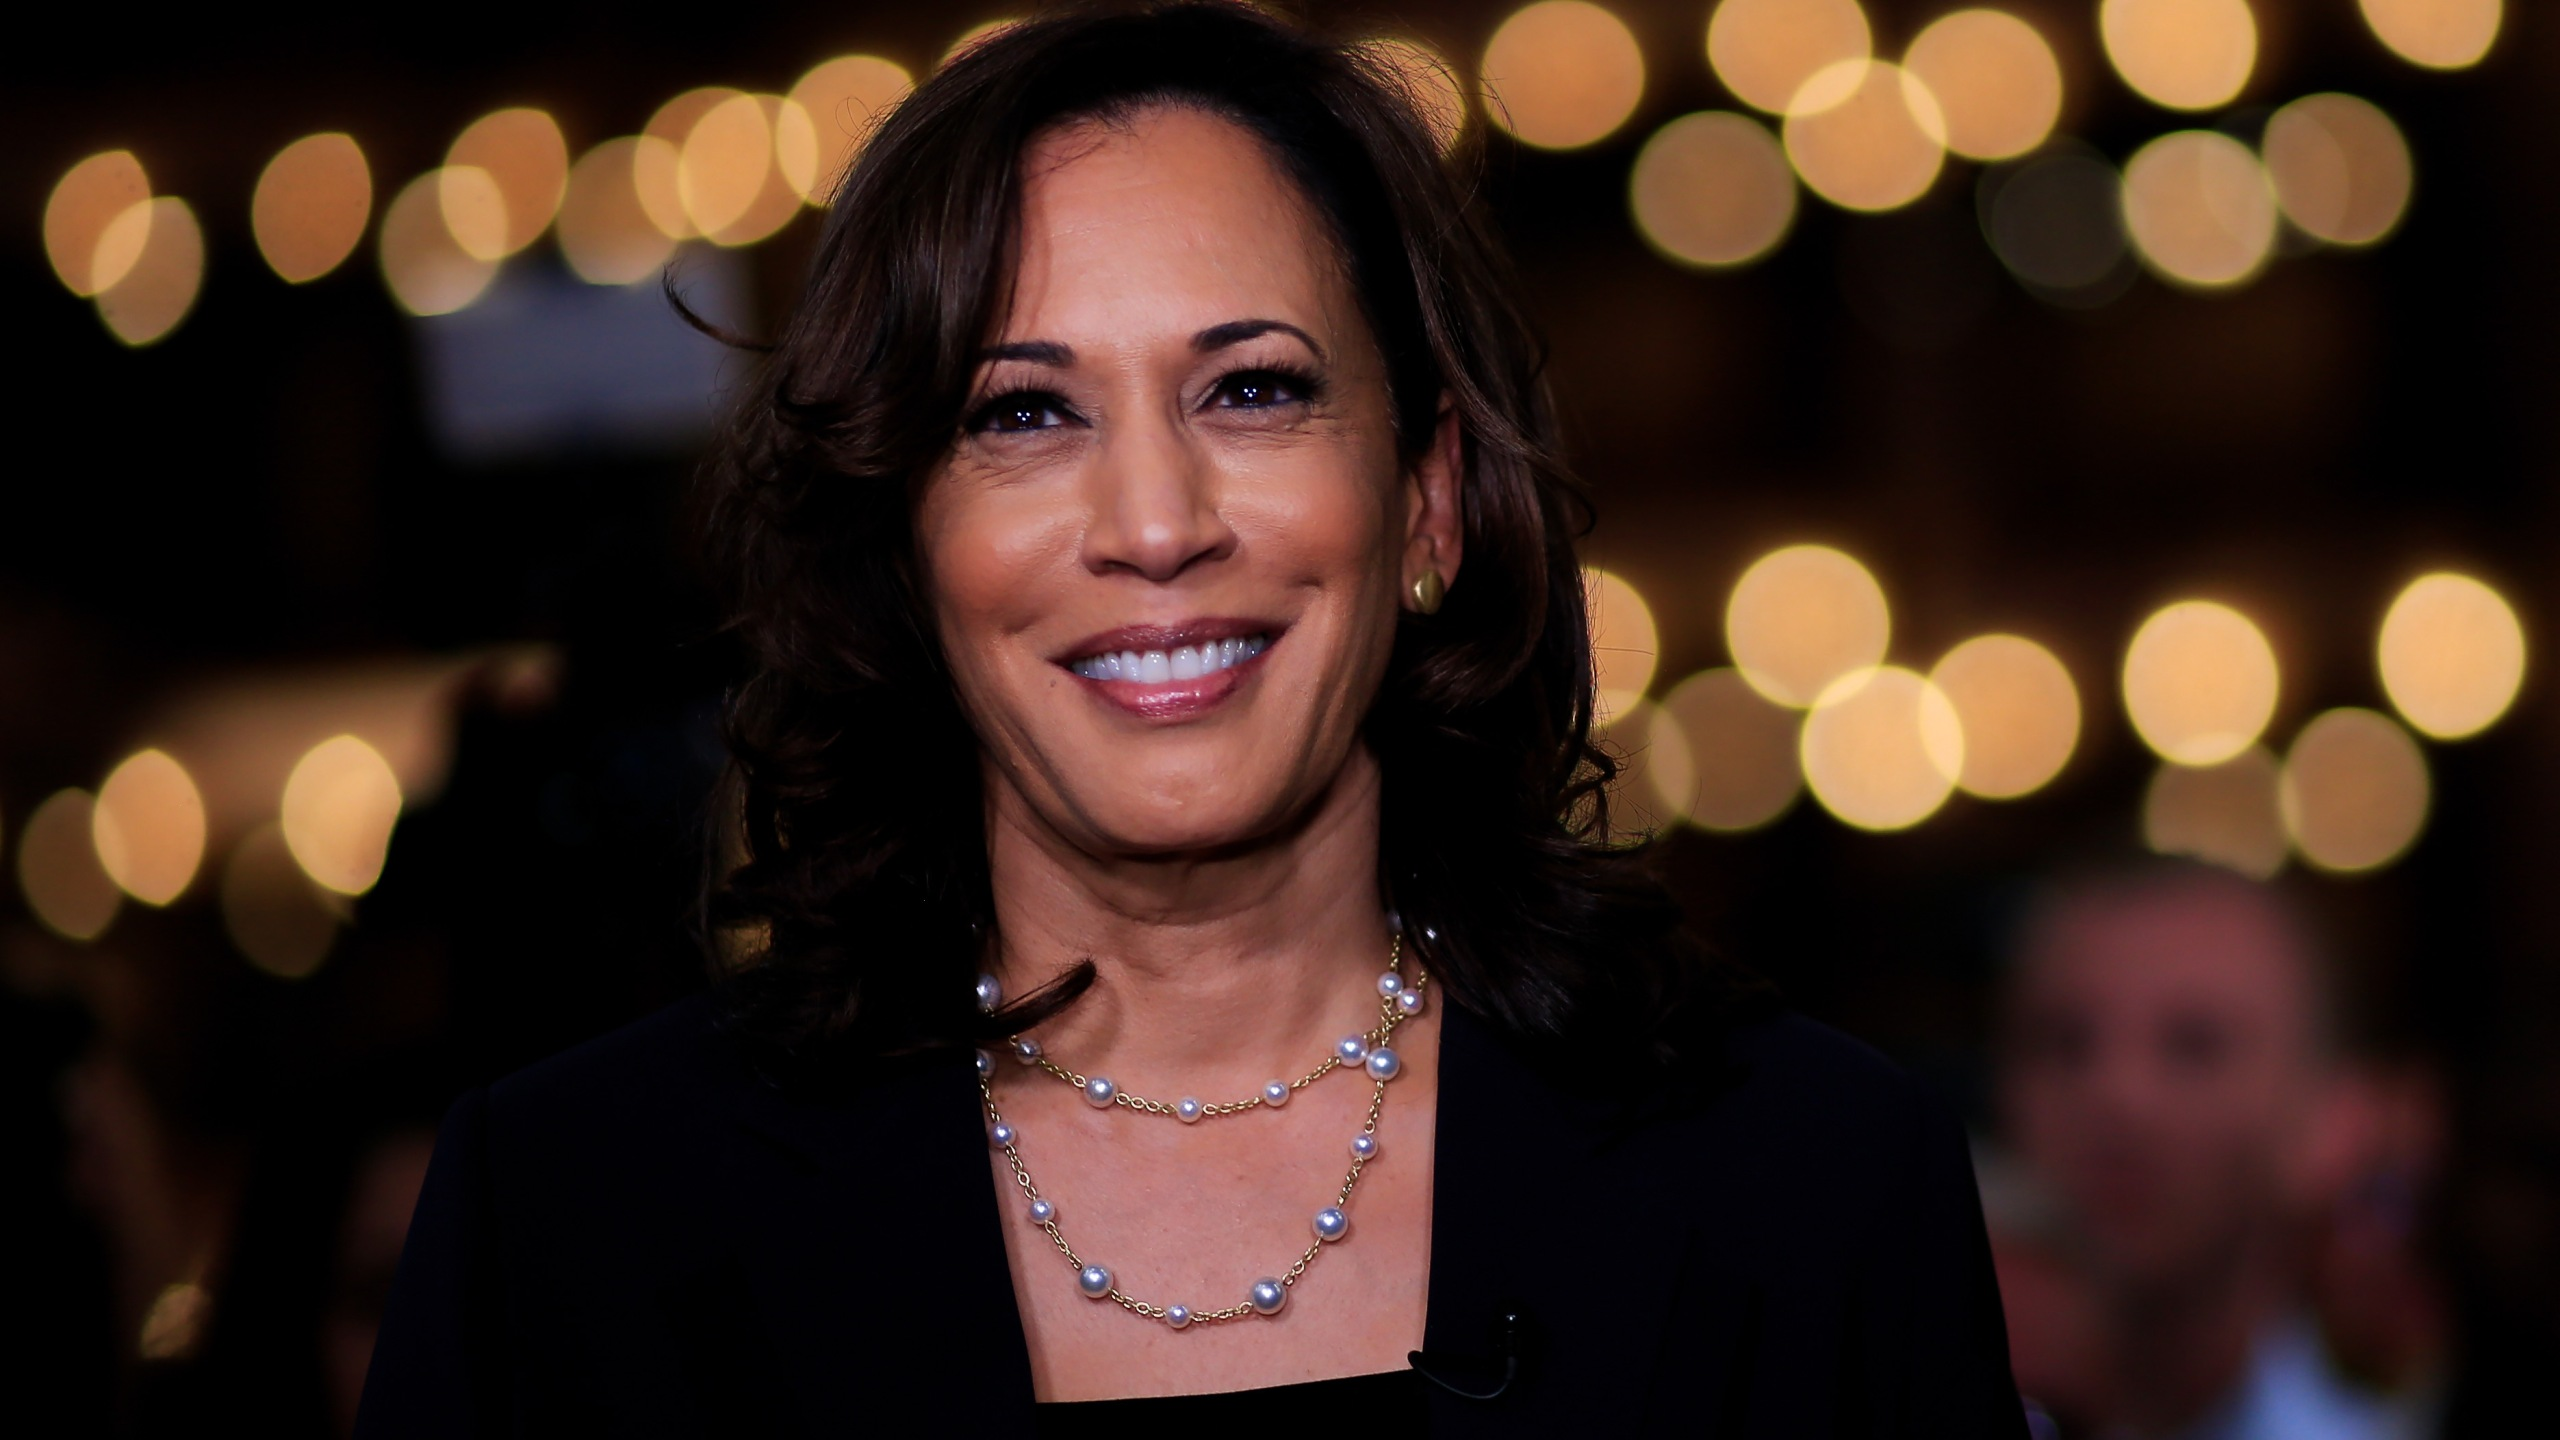 Democratic presidential candidate Sen. Kamala Harris (D-CA) speaks during a television interview after the second night of the first Democratic presidential debate on June 27, 2019, in Miami, Fla. (Credit: Cliff Hawkins/Getty Images)